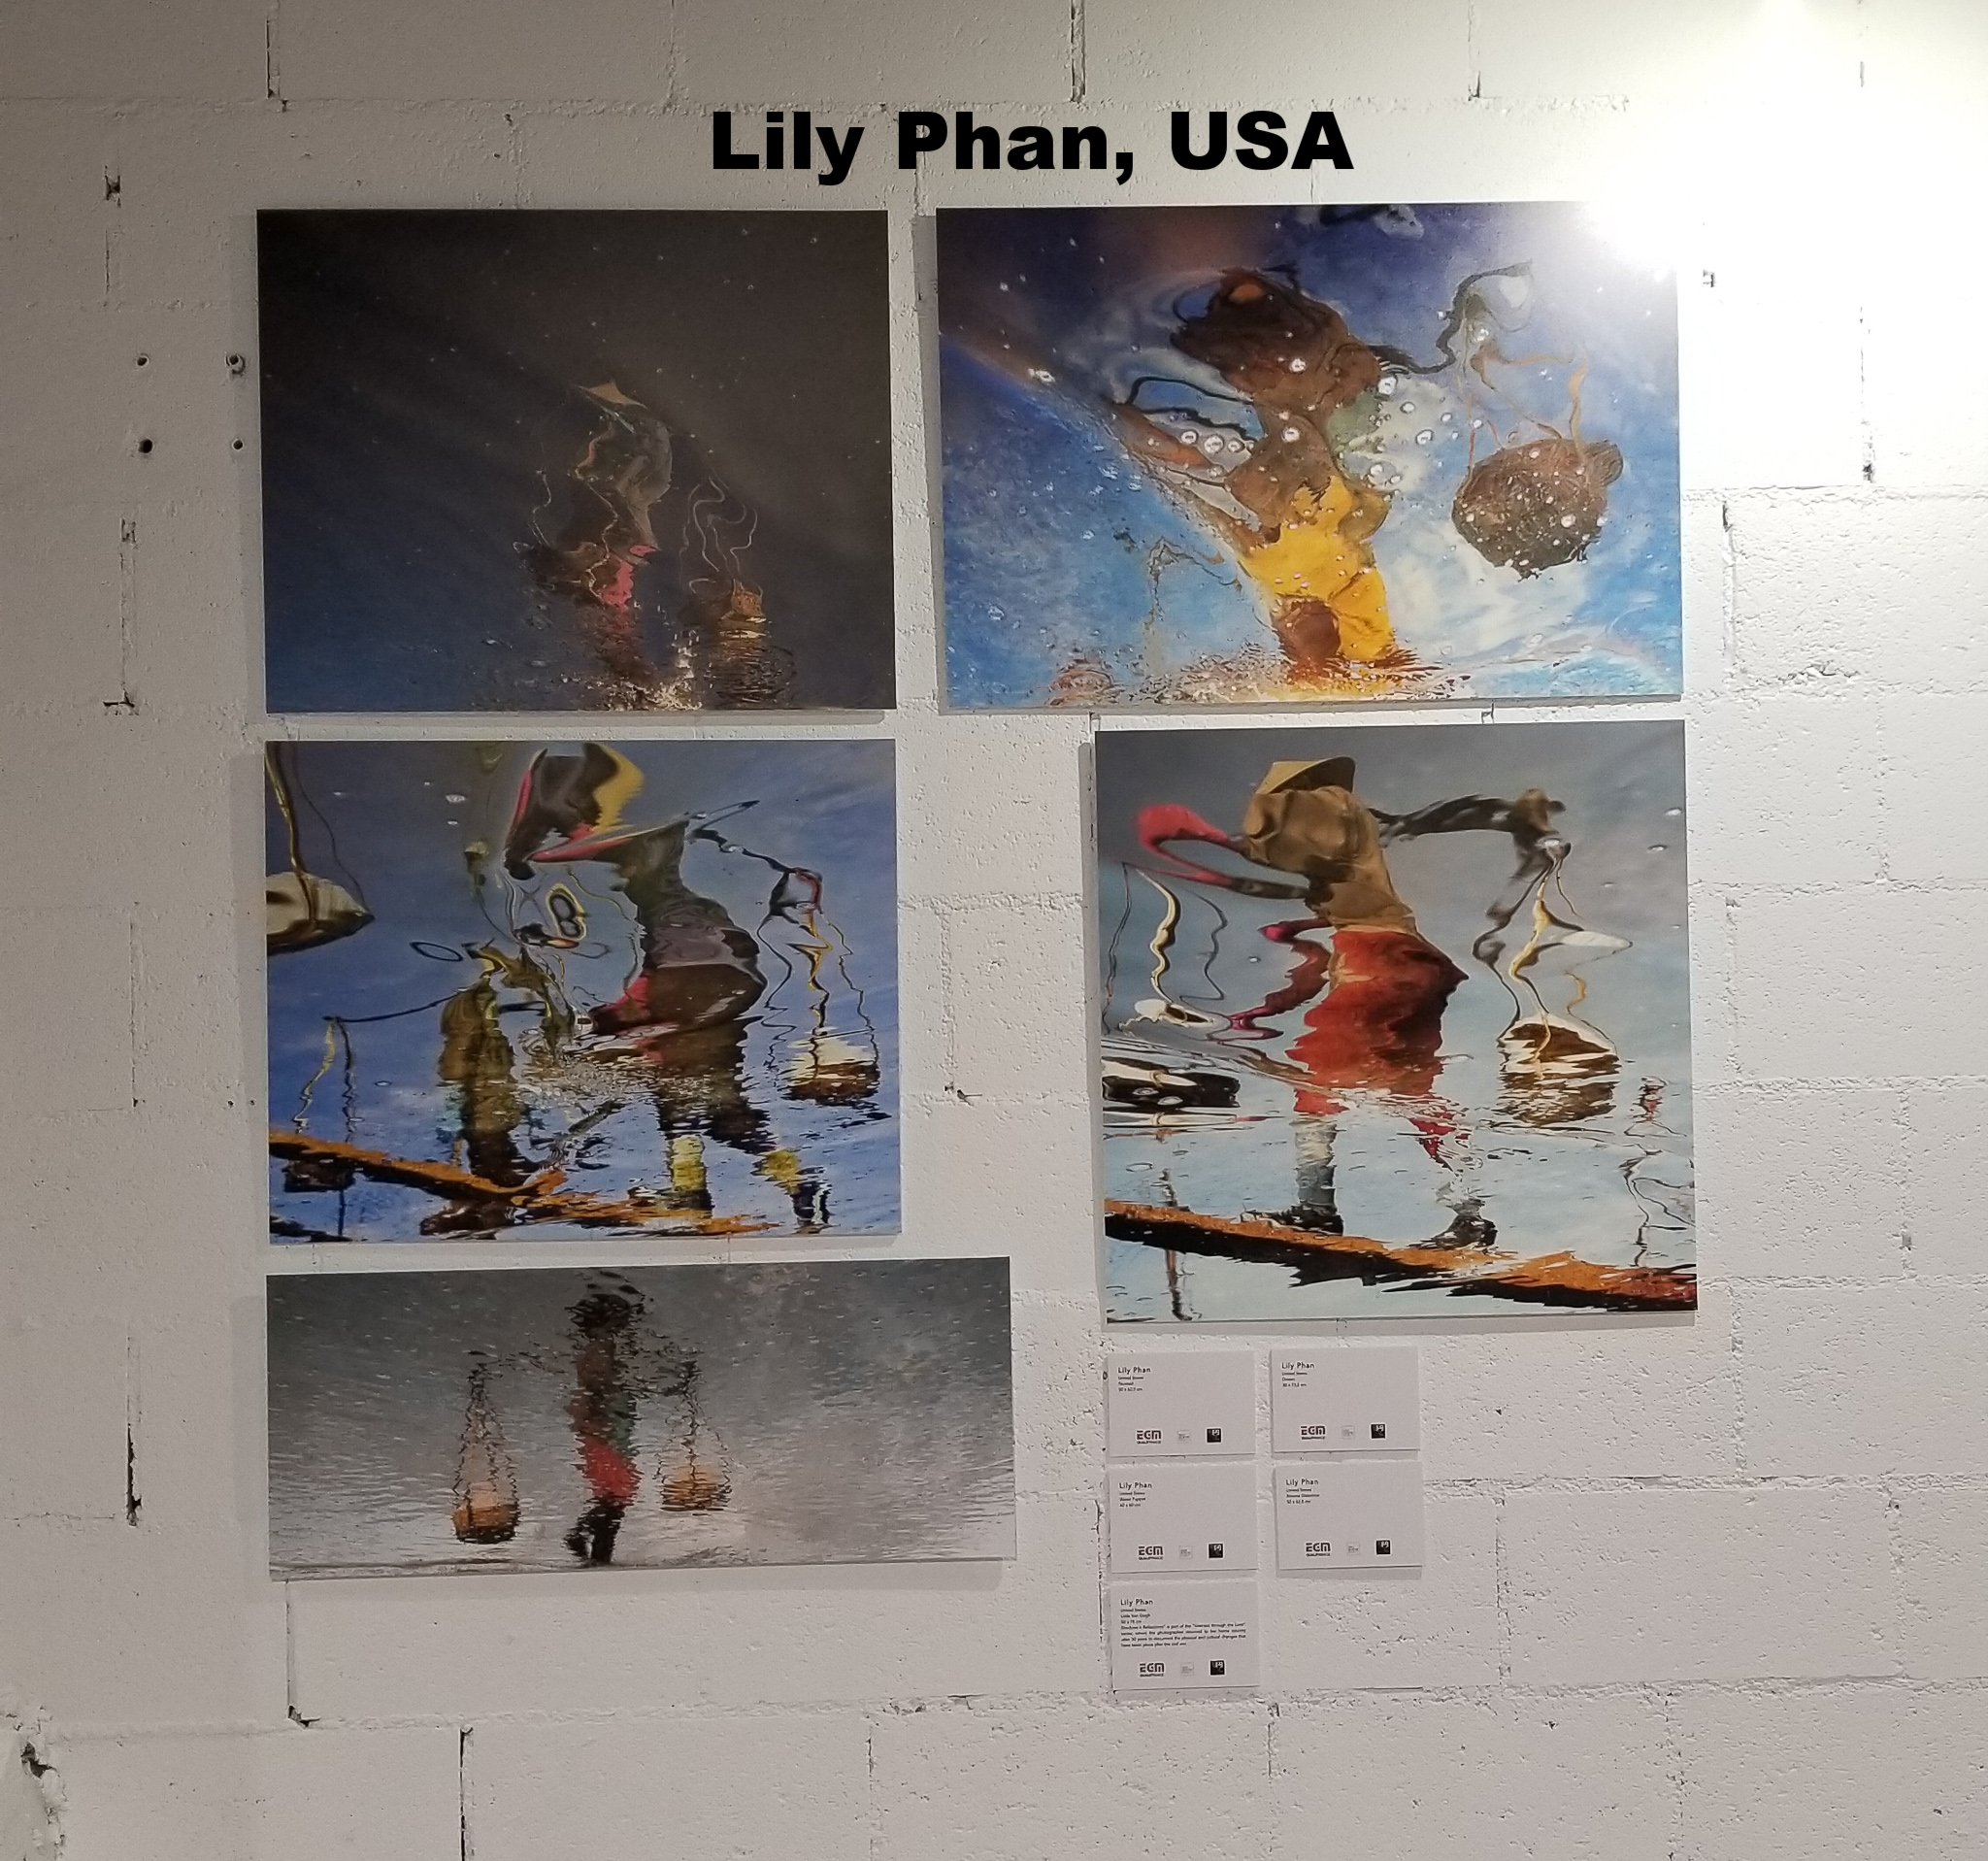 Lily Phan, United States